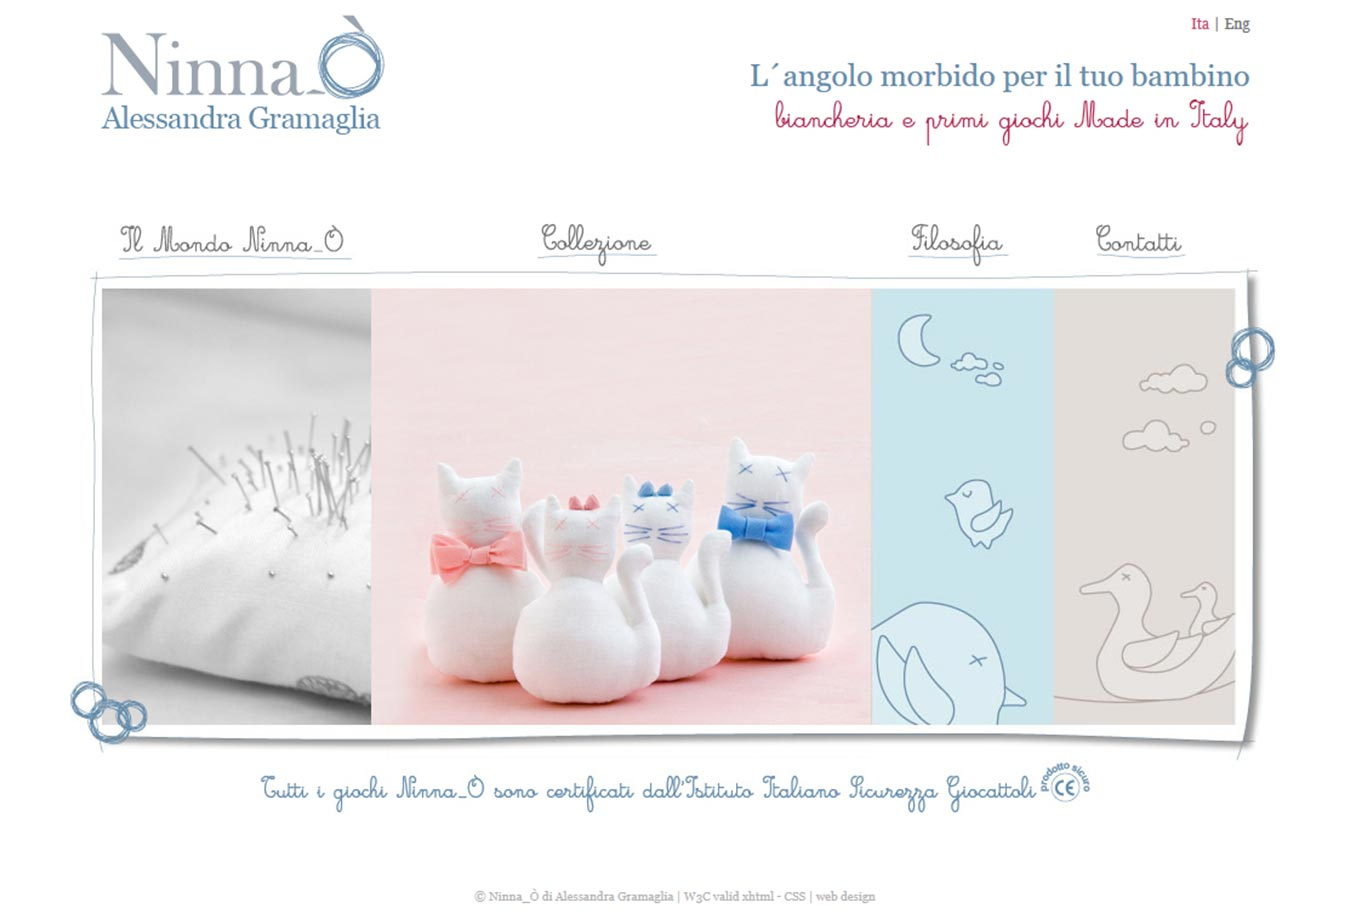 Ninna_Ò website